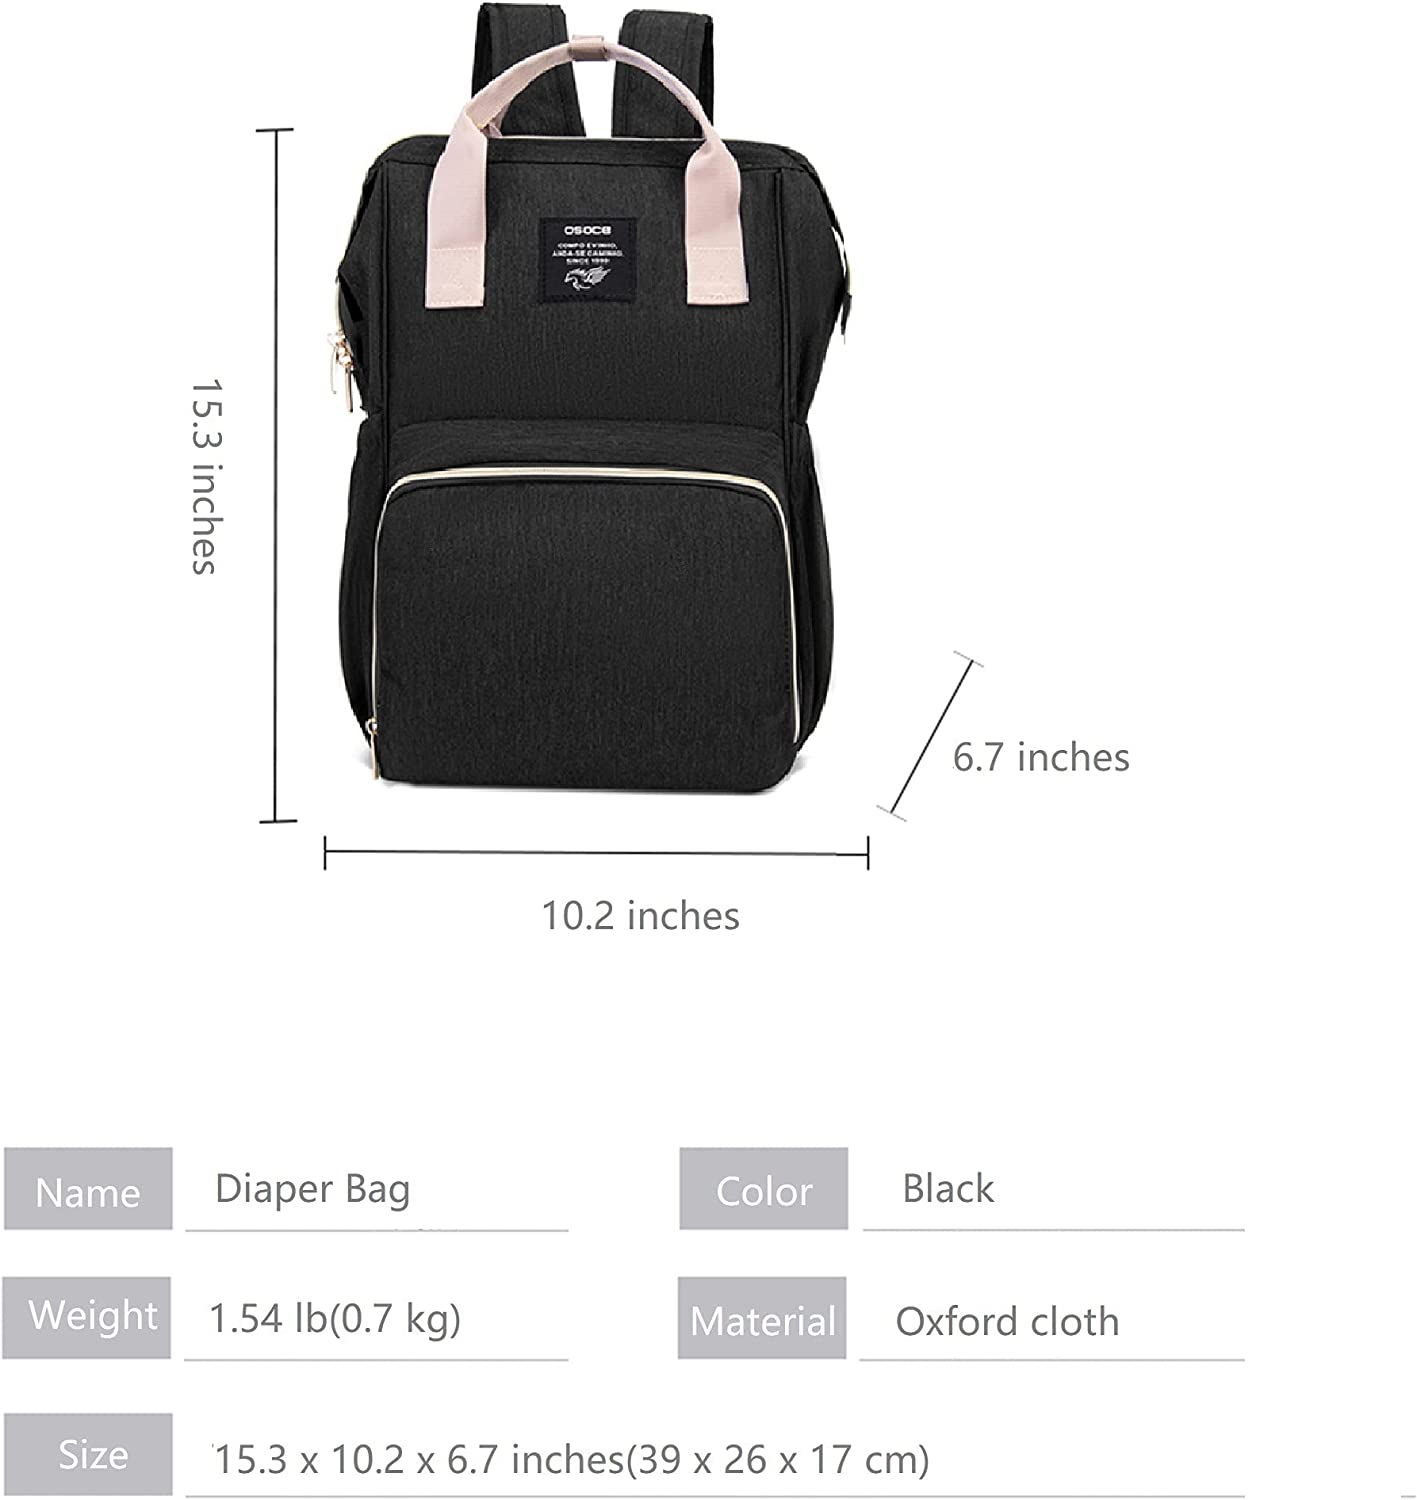 Large Capacity Diaper Bag, Multifunction Travel Backpack for Baby and Maternity, Multiple Pocket Design, with Insulation Pockets. (Black)